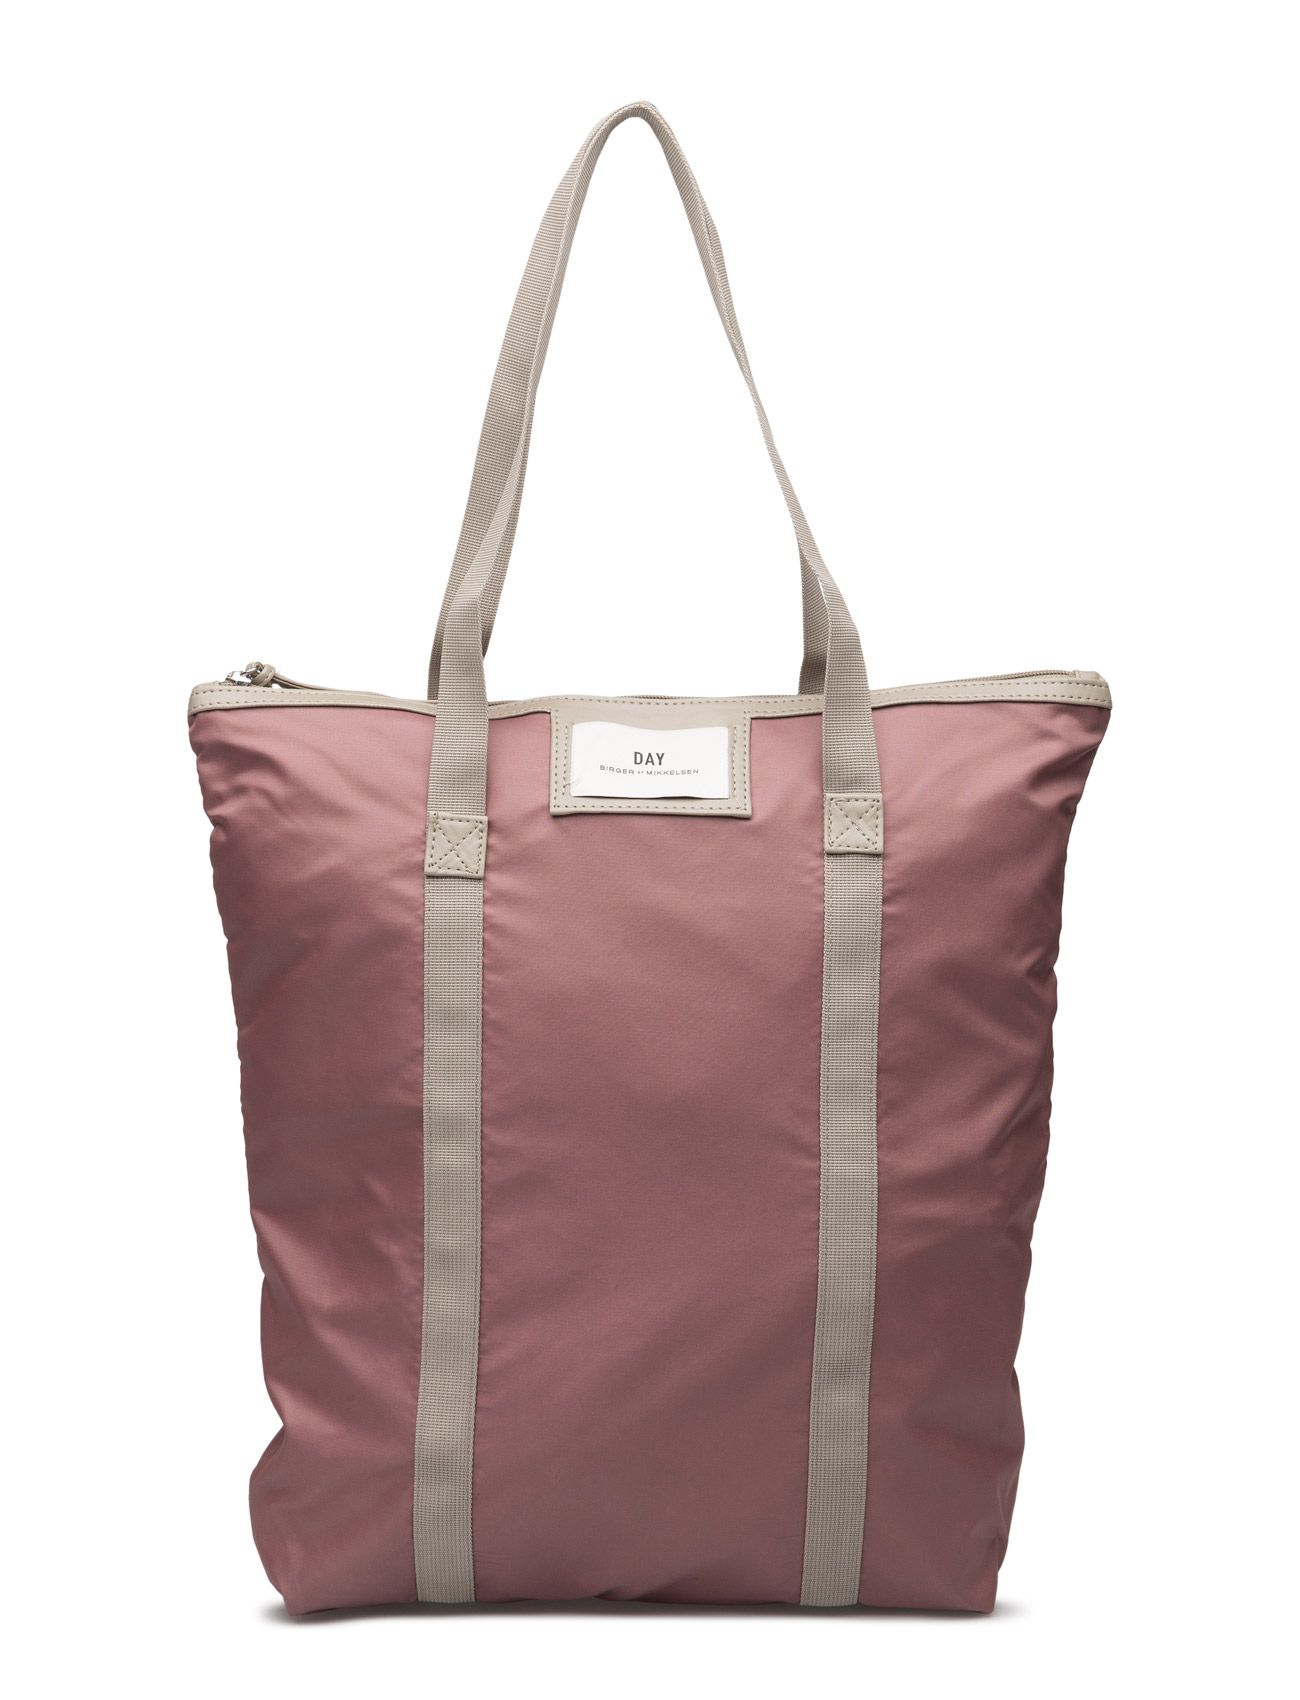 DAY - Day Gweneth Tone Tote